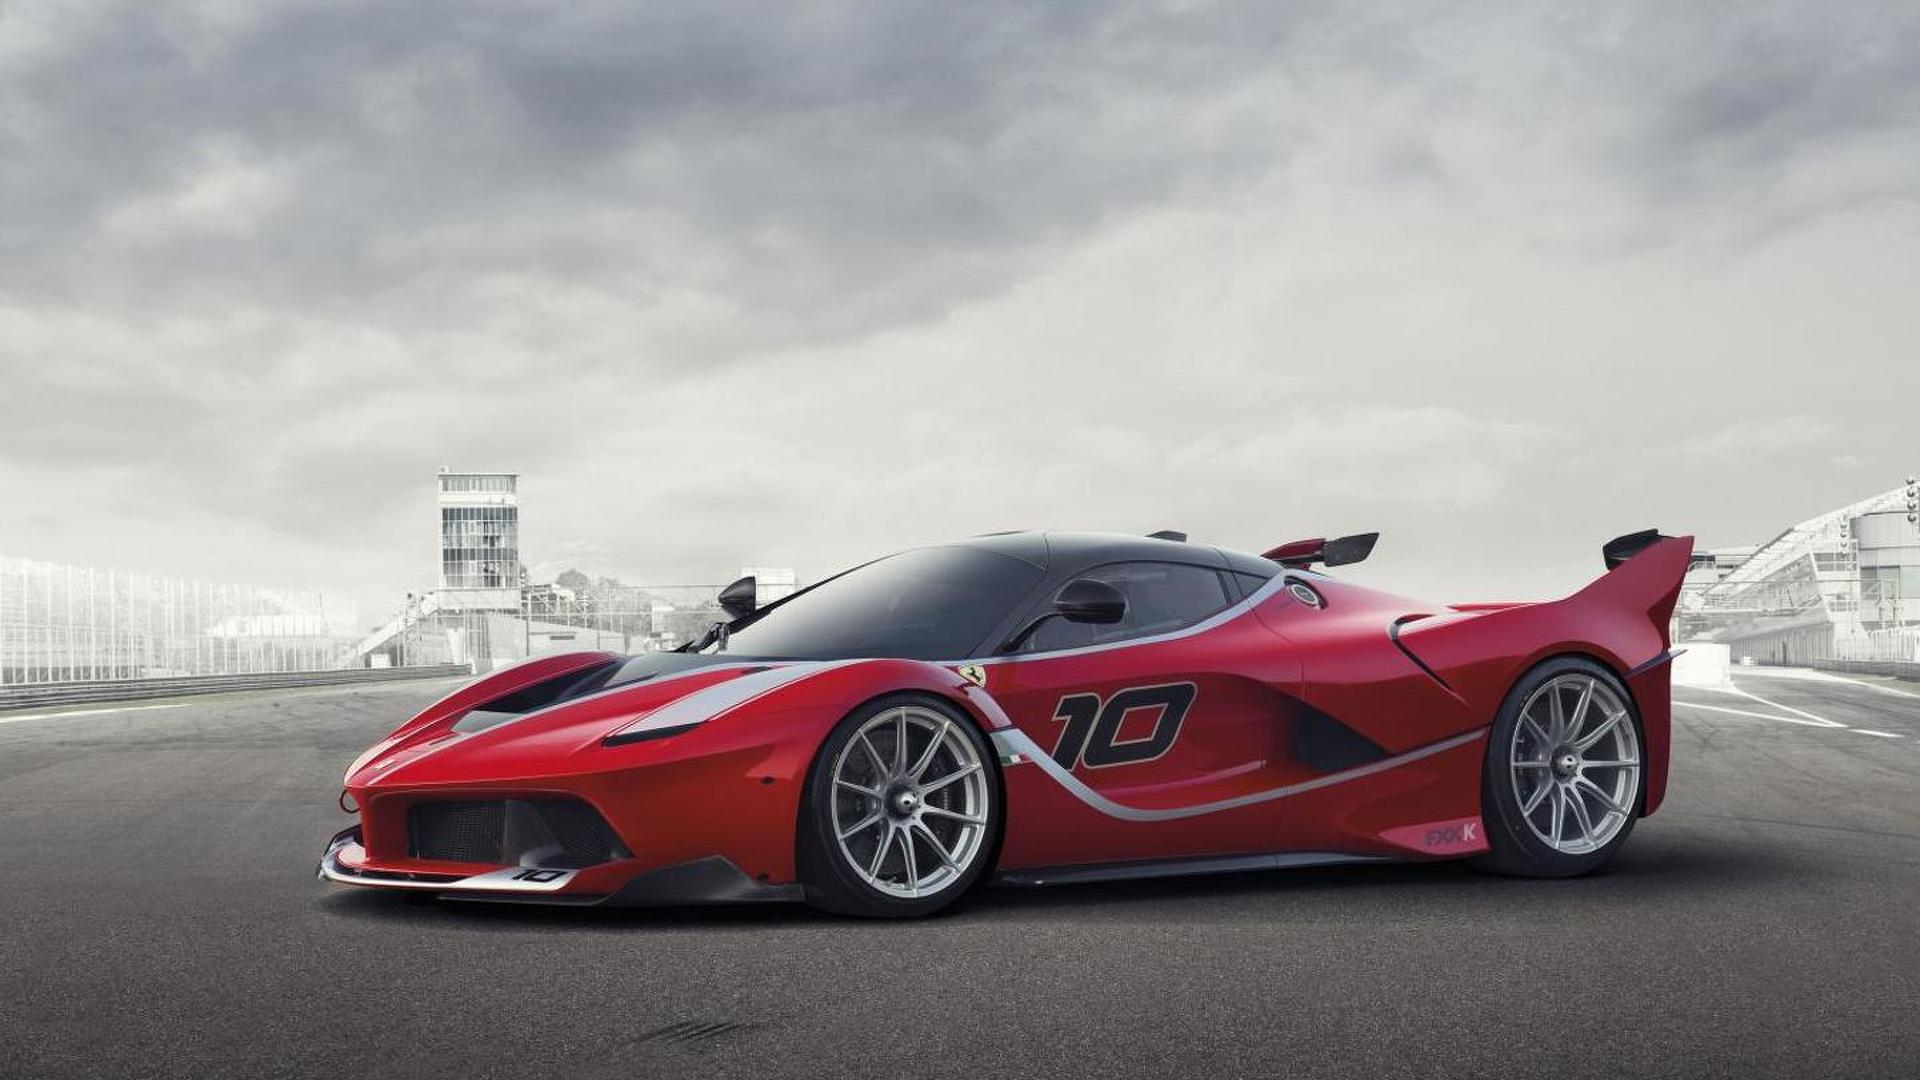 Ferrari probably planning a more hardcore FXX K Evoluzione version